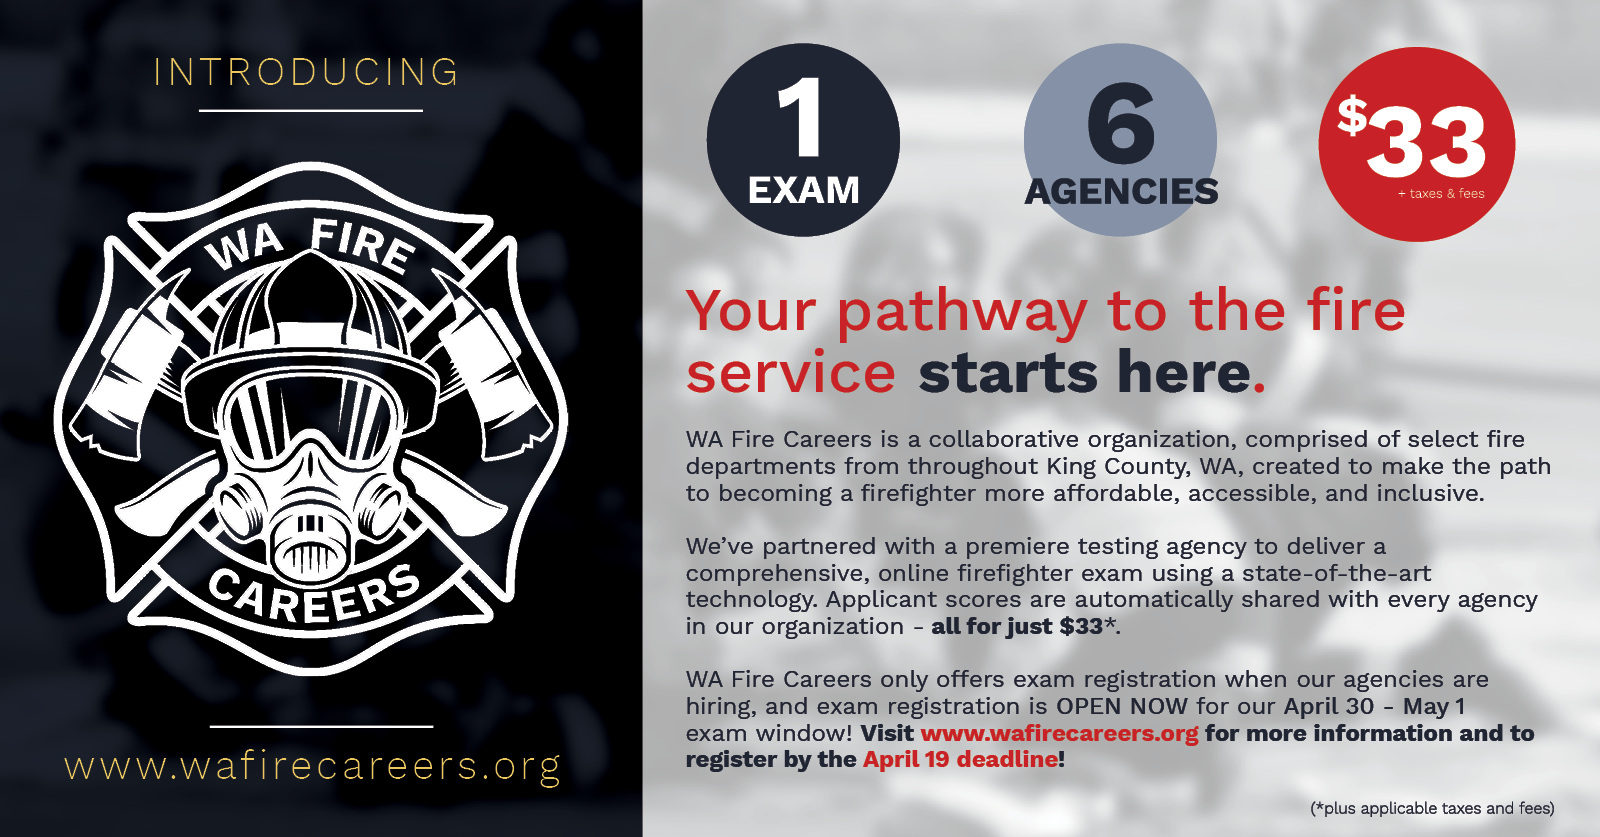 Introducing WA Fire Careers – Our New Firefighter Exam